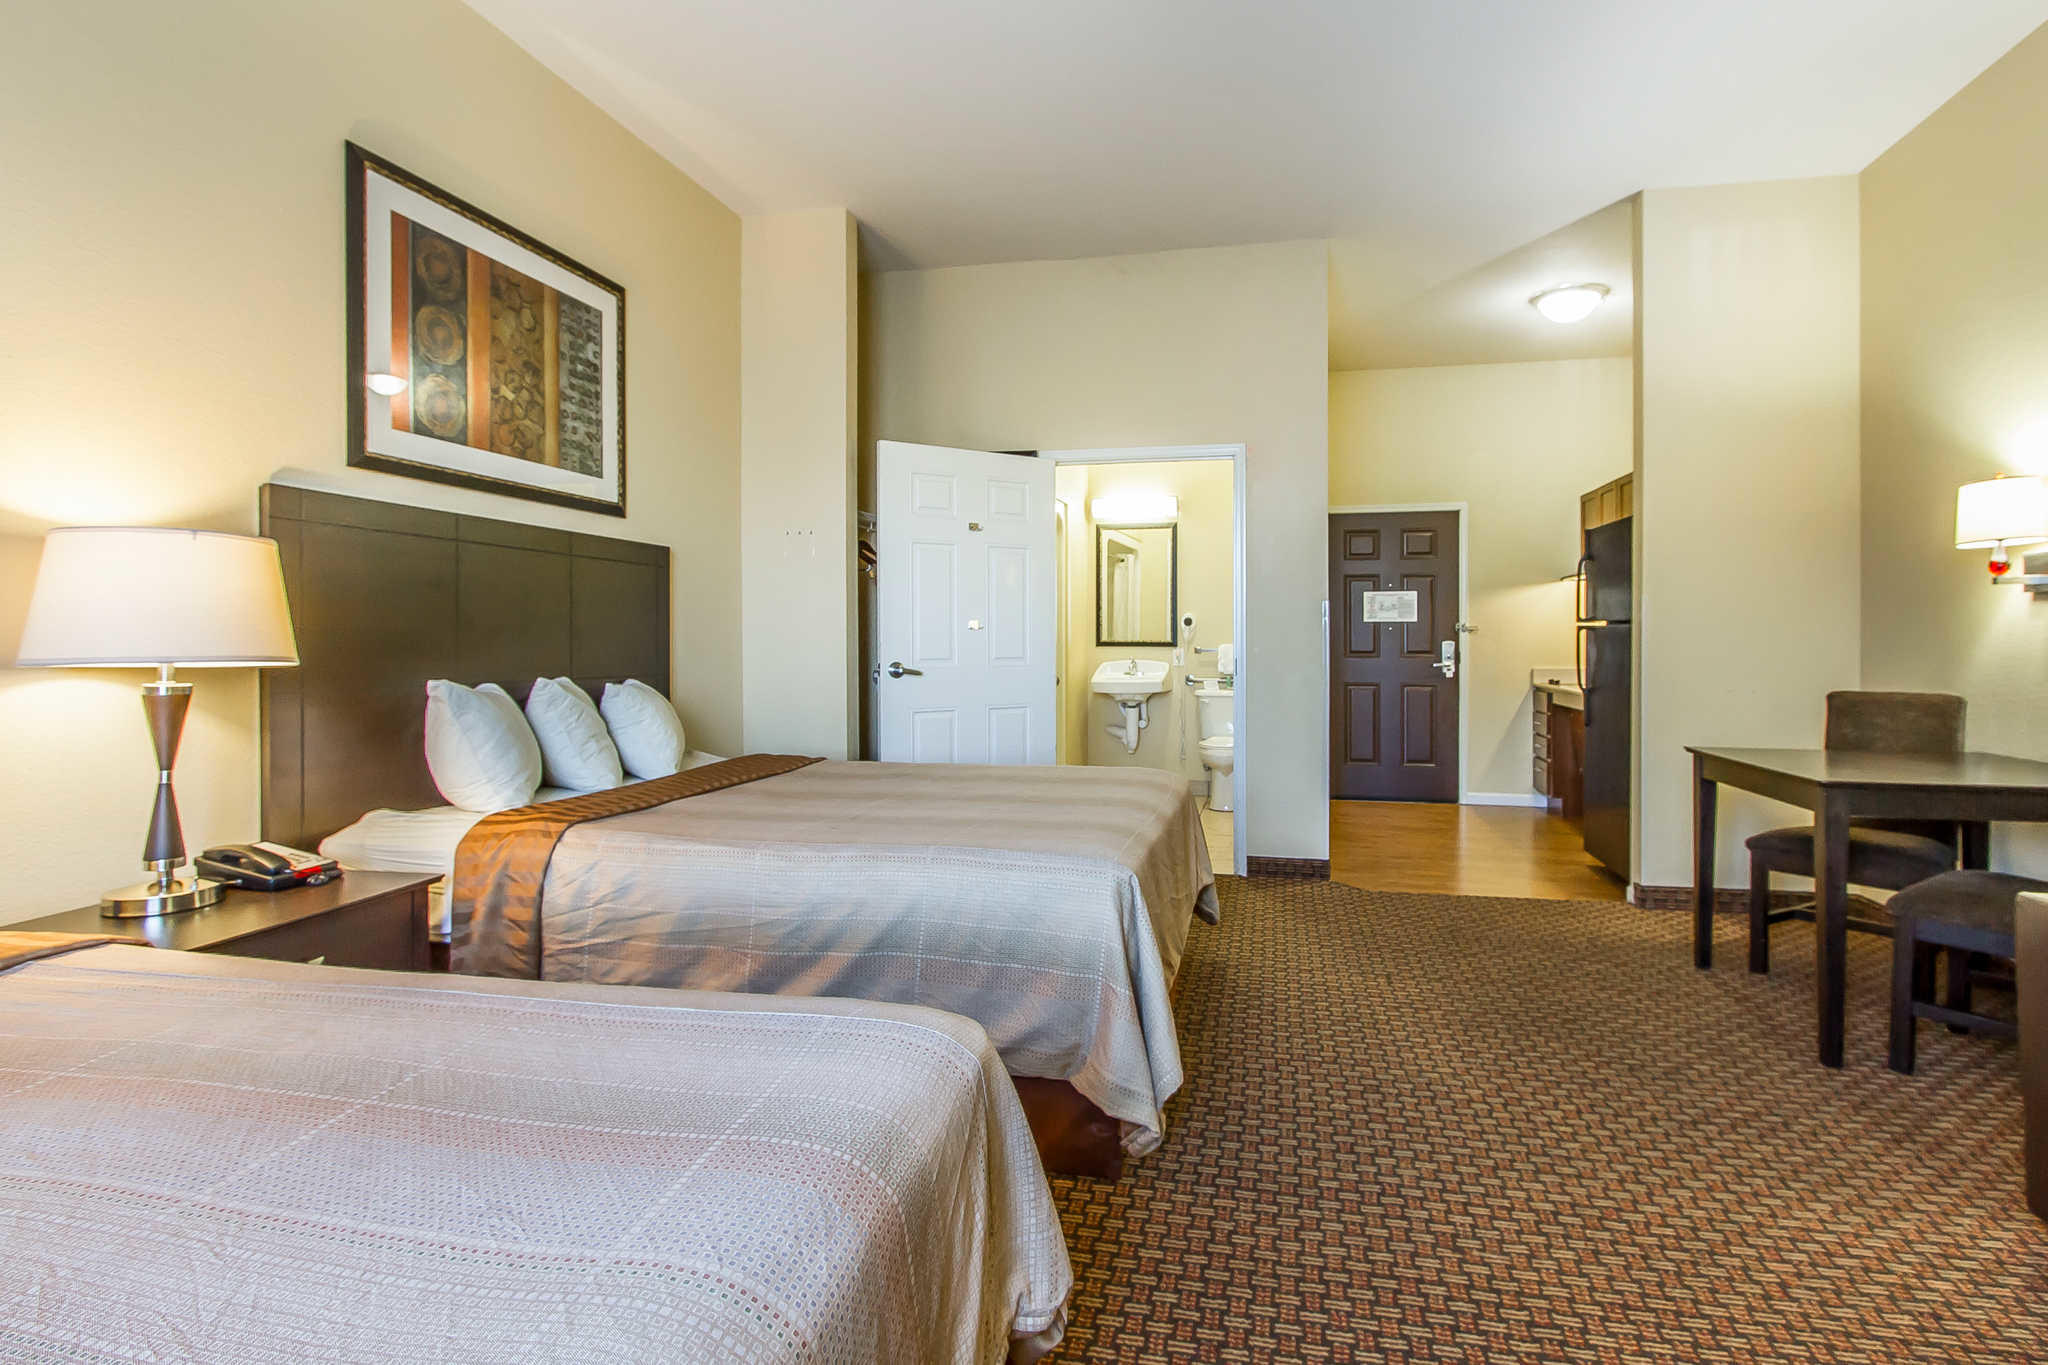 MainStay Suites Fort Campbell image 10